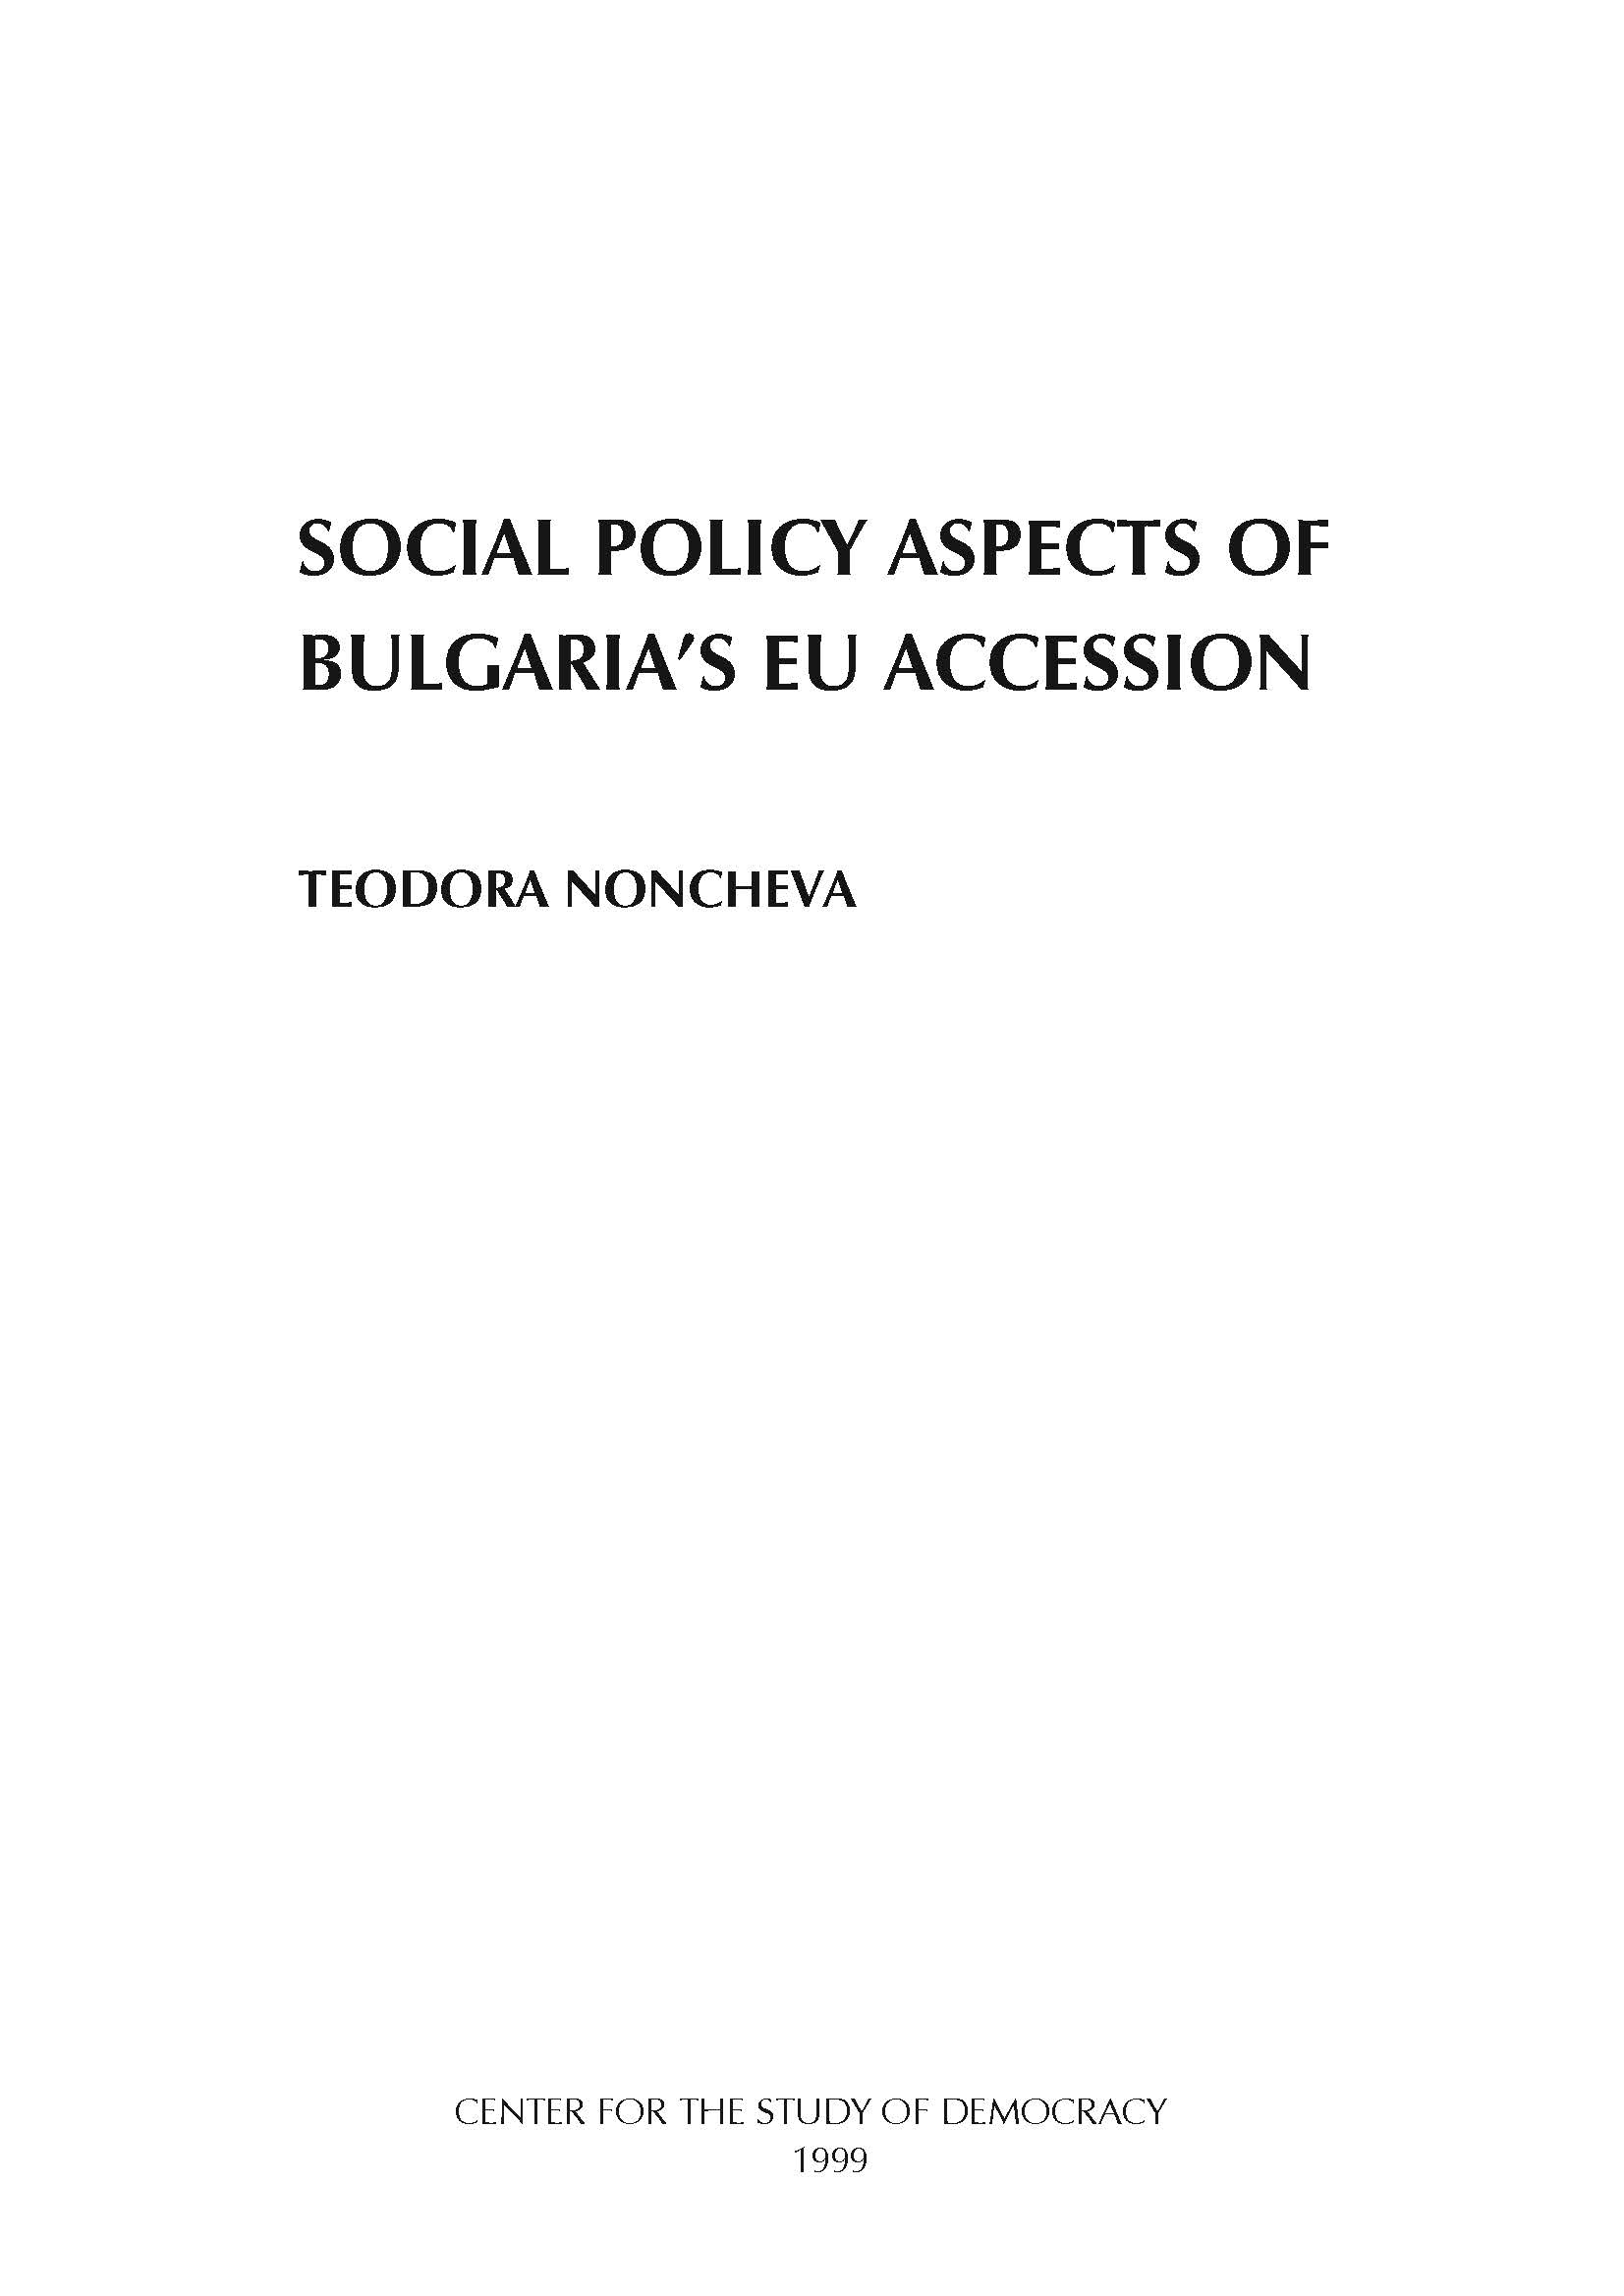 #02 Social Policy Aspects of Bulgaria's EU Accession